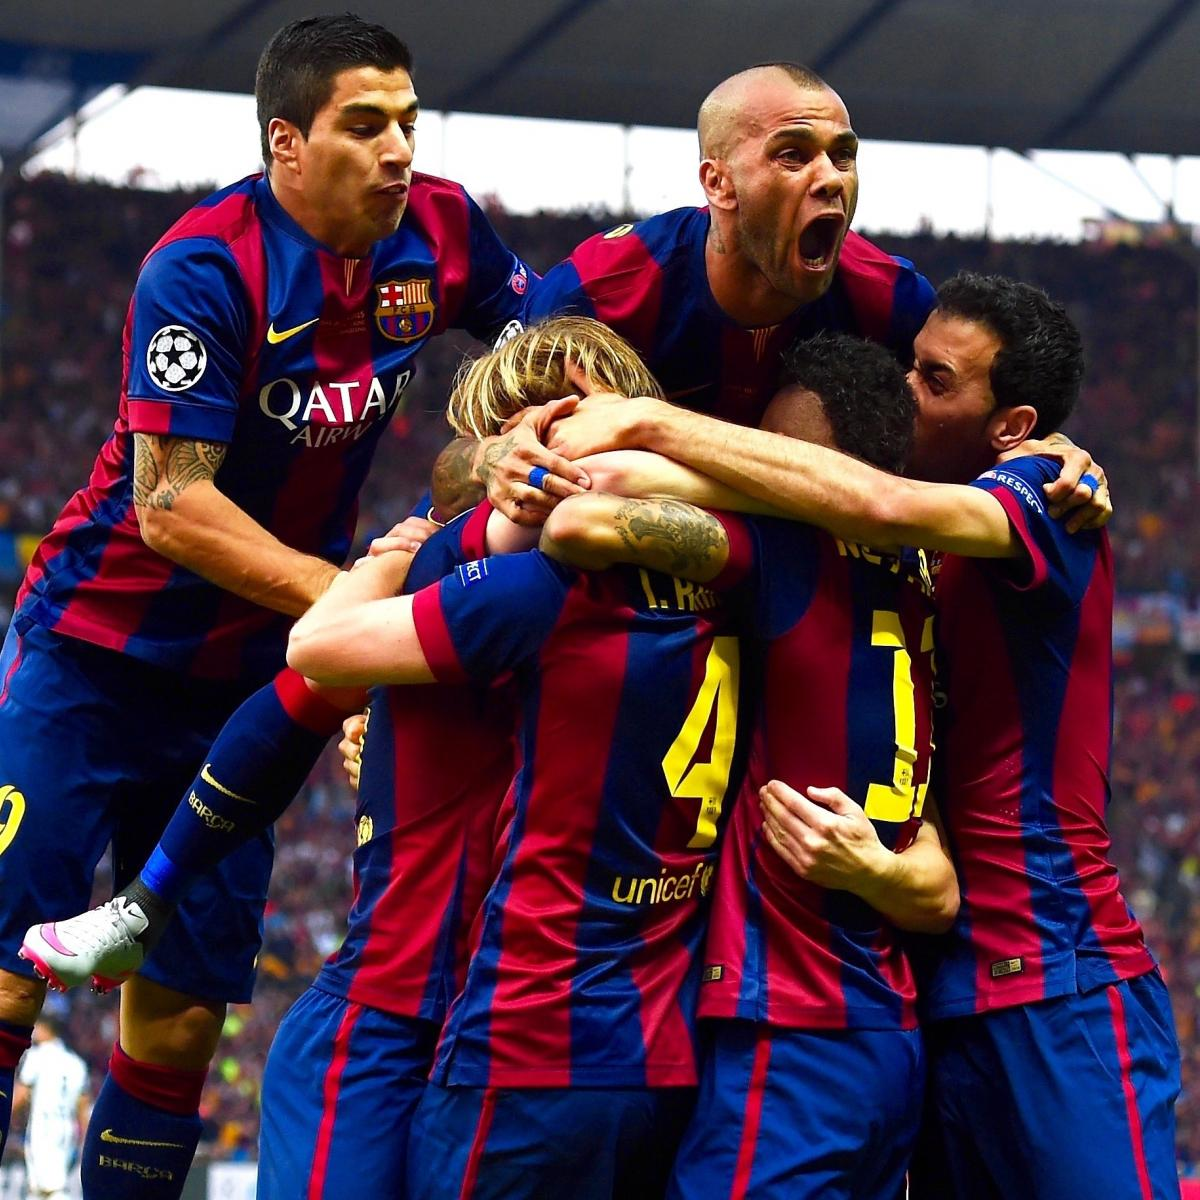 Juventus Vs Barcelona Live Score Highlights From 2015 Champions League Final Bleacher Report Latest News Videos And Highlights